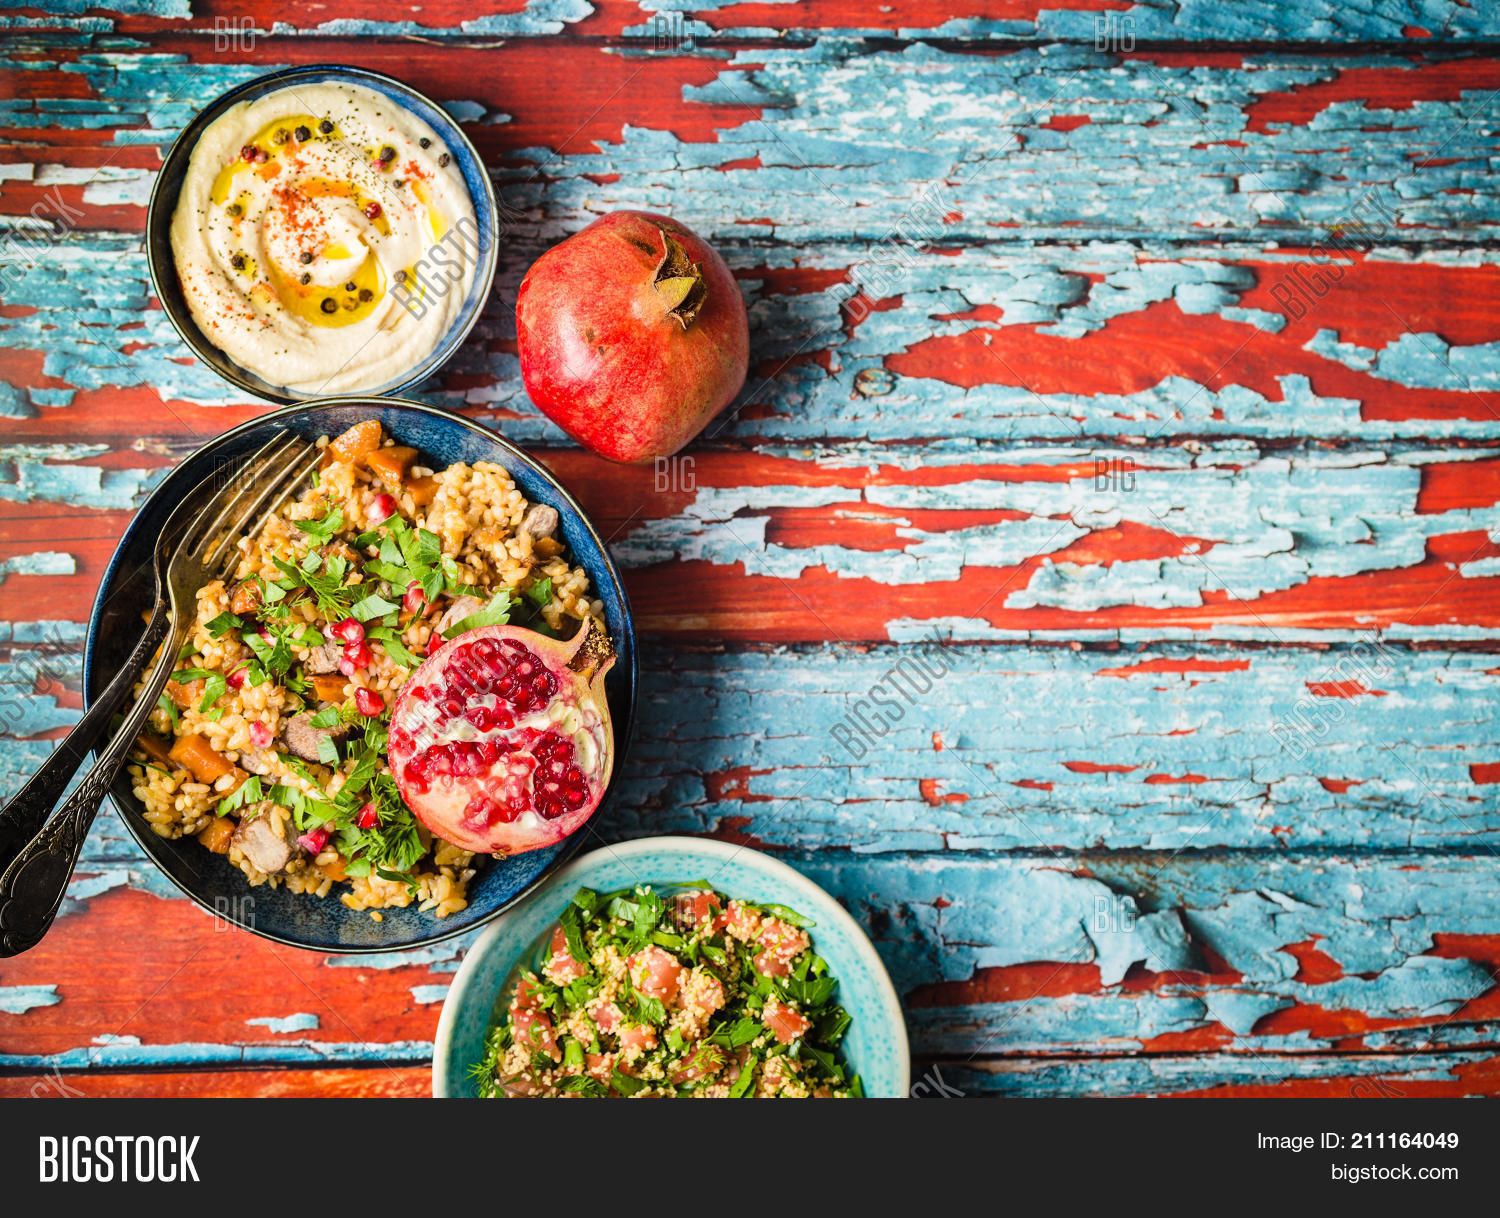 Imagen y foto middle eastern food table bigstock middle eastern food table forumfinder Gallery